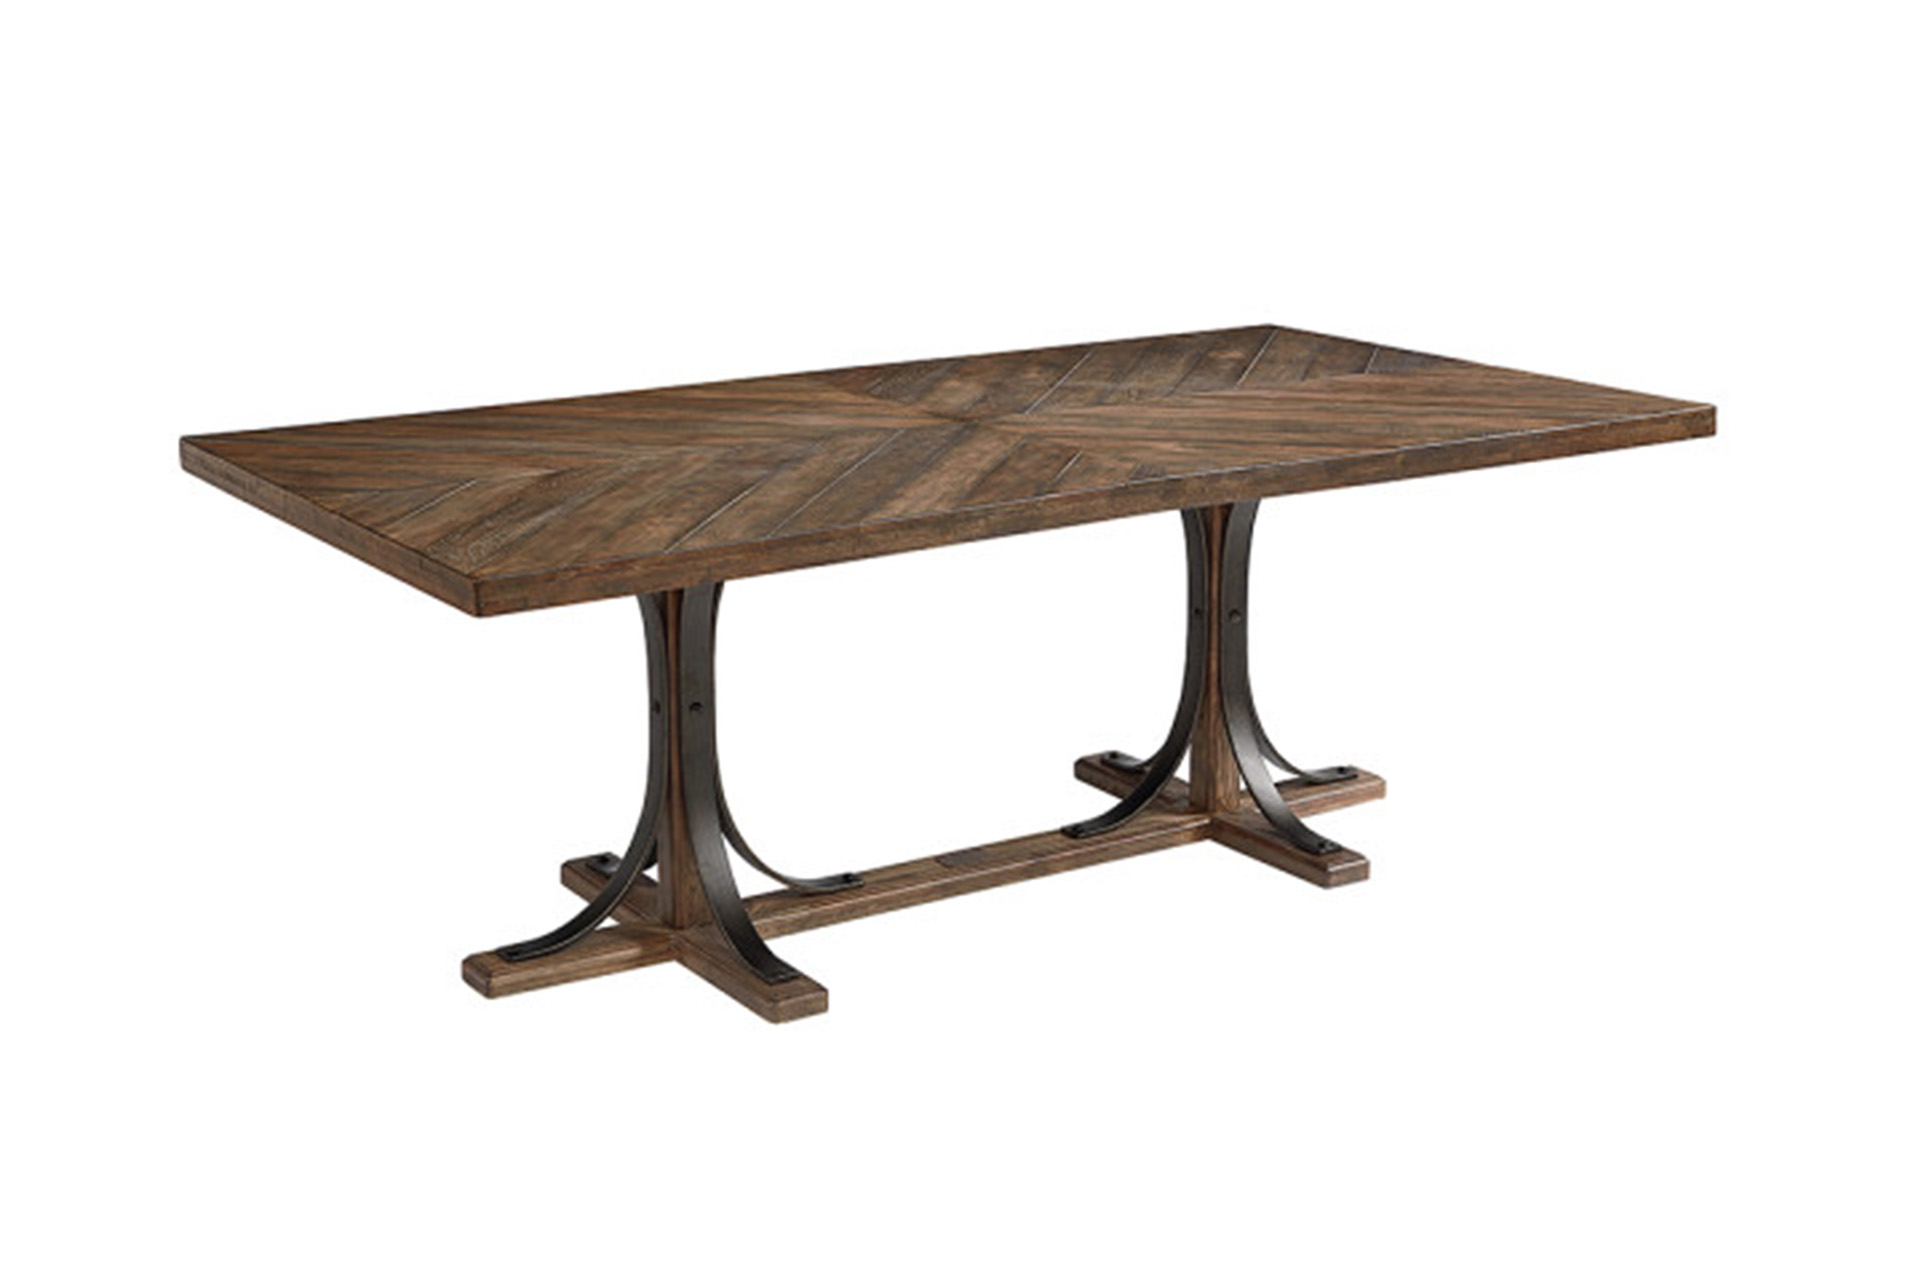 Superieur Magnolia Home Shop Floor Dining Table With Iron Trestle By Joanna Gaines  (Qty: 1) Has Been Successfully Added To Your Cart.